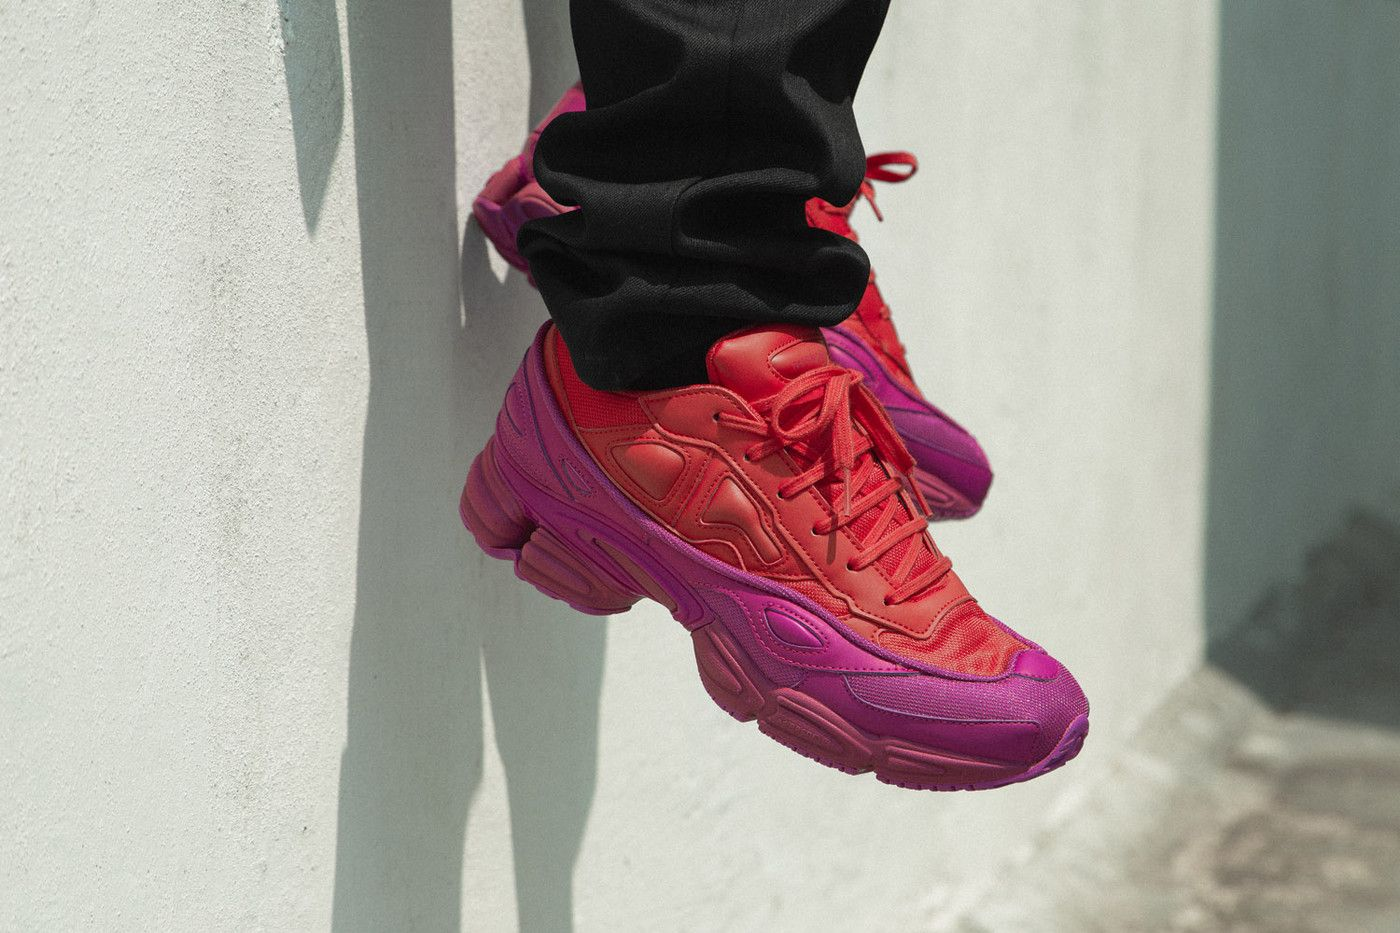 8a56755d993fd adidas by raf simons ozweego on foot look hbx pink purple